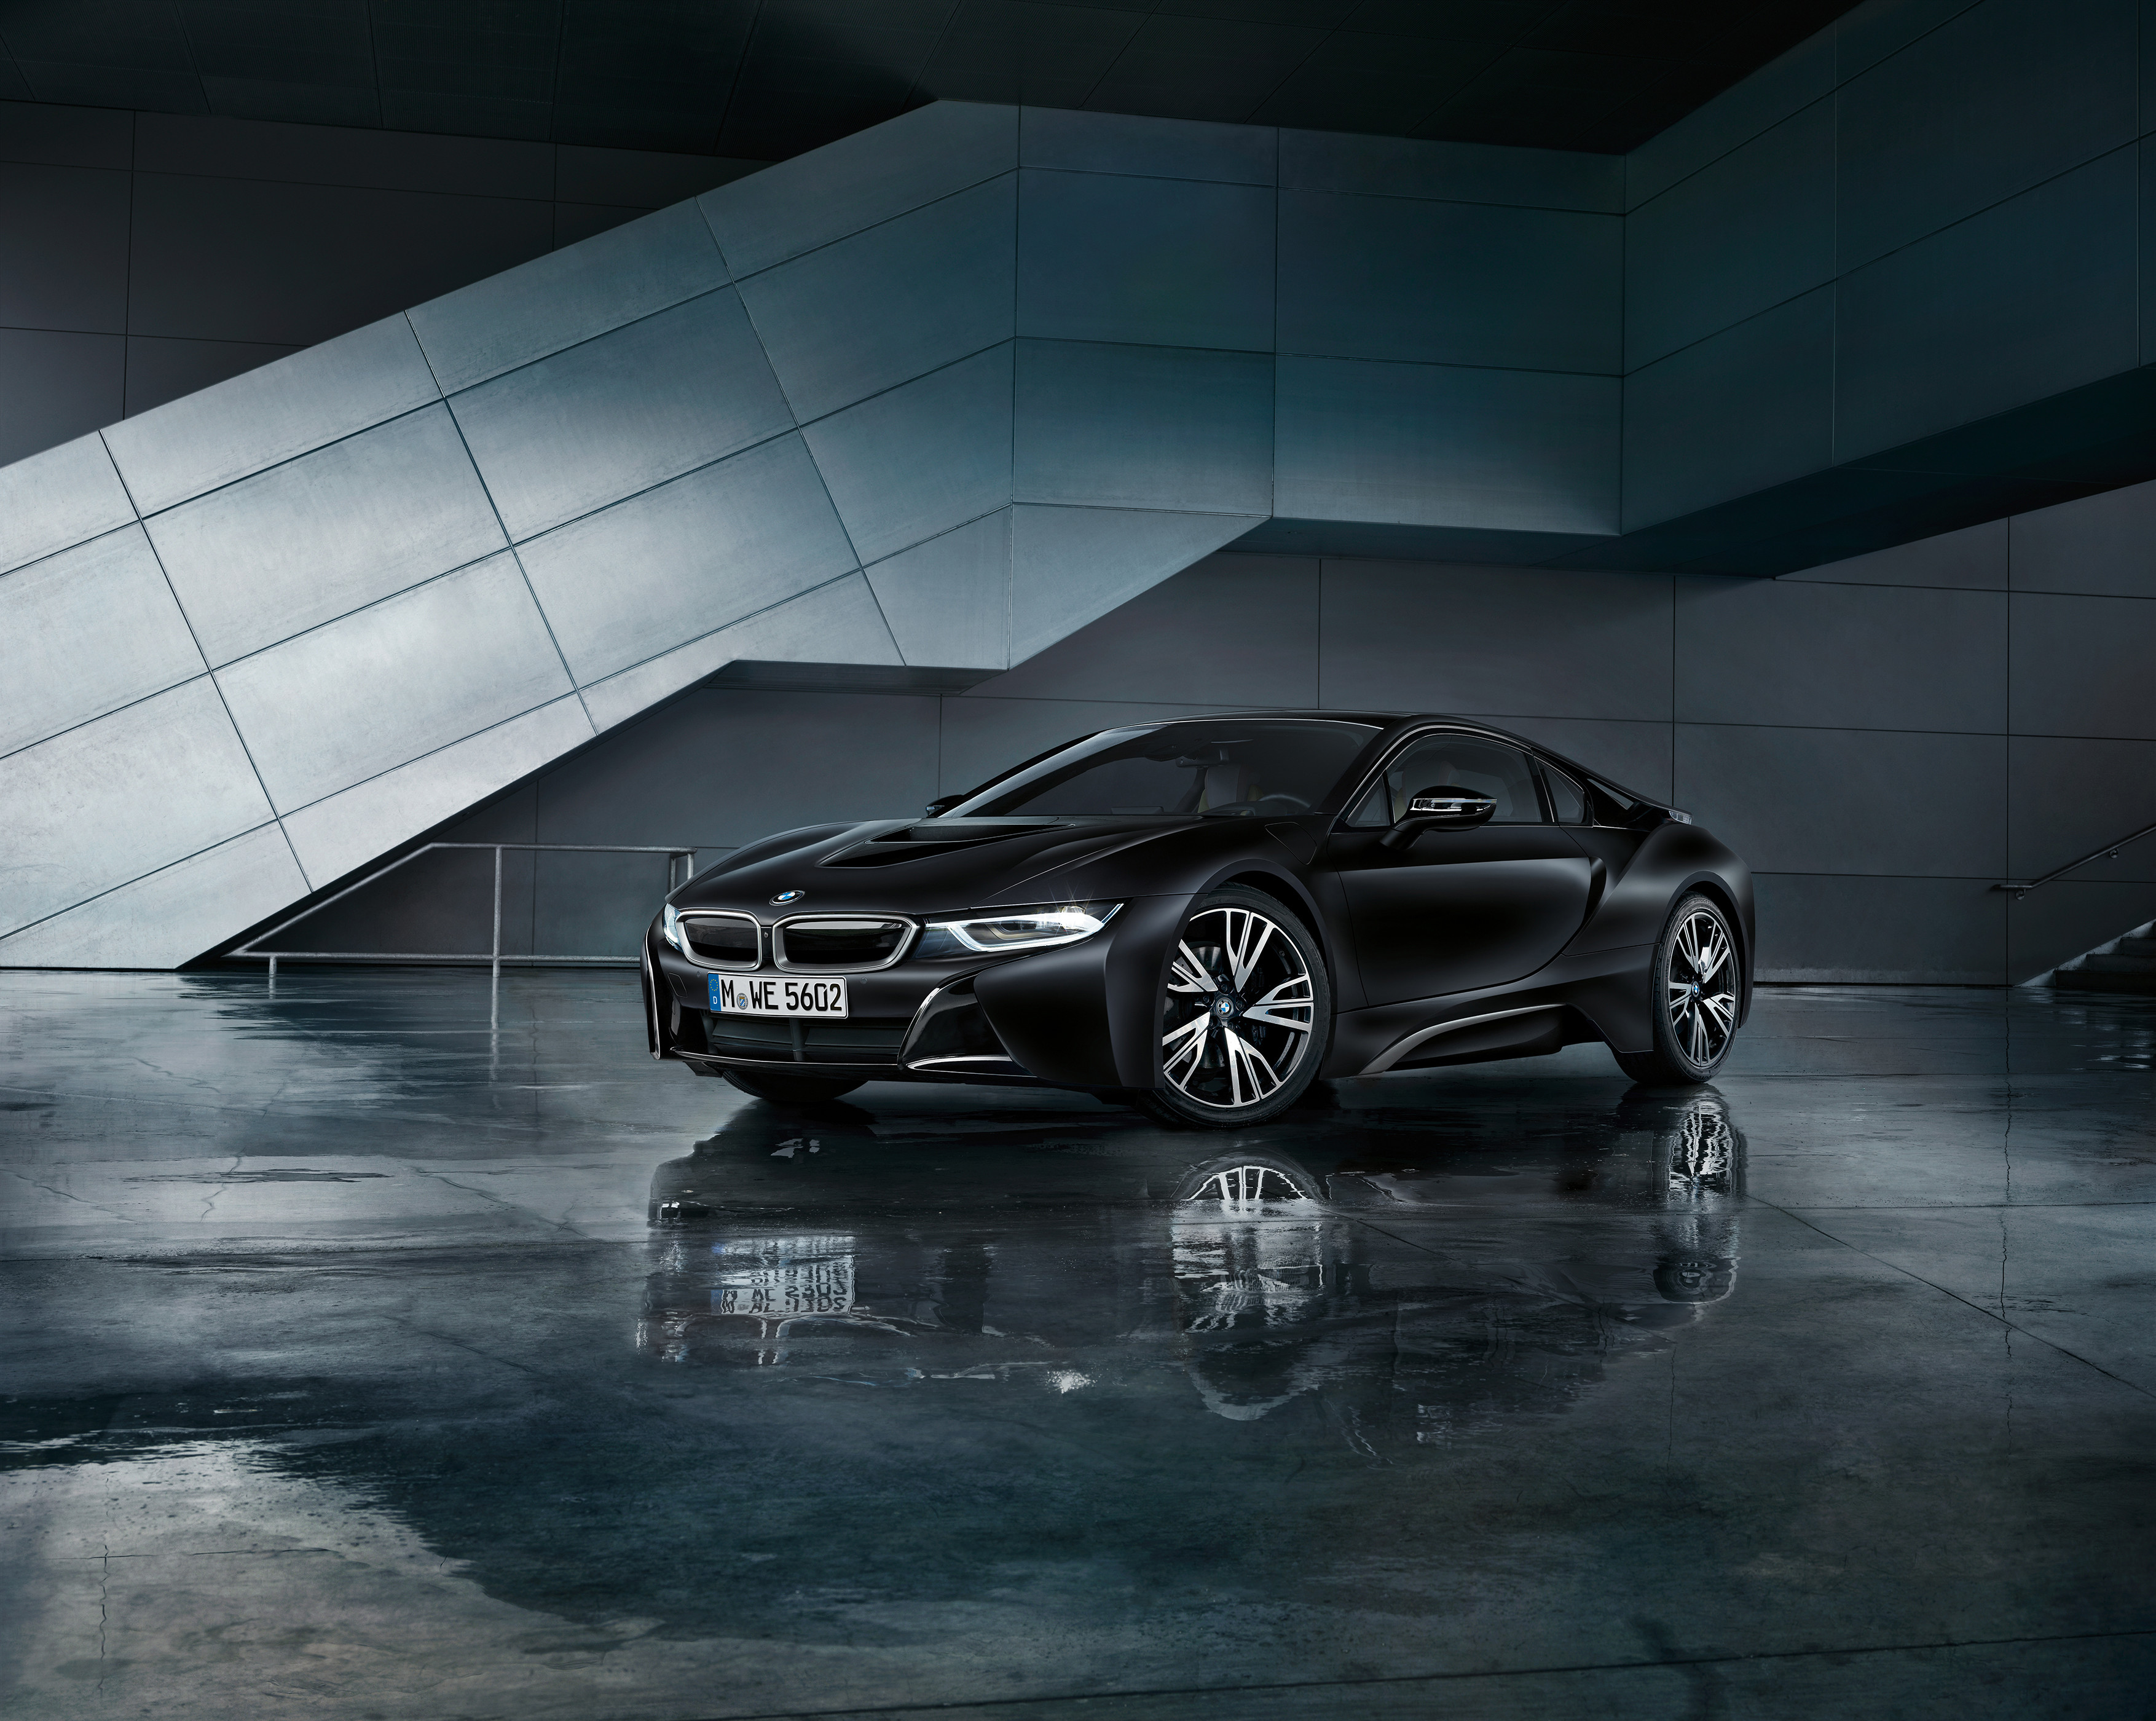 1280x2120 Bmw I8 Black 2018 Iphone 6 Hd 4k Wallpapers Images Backgrounds Photos And Pictures